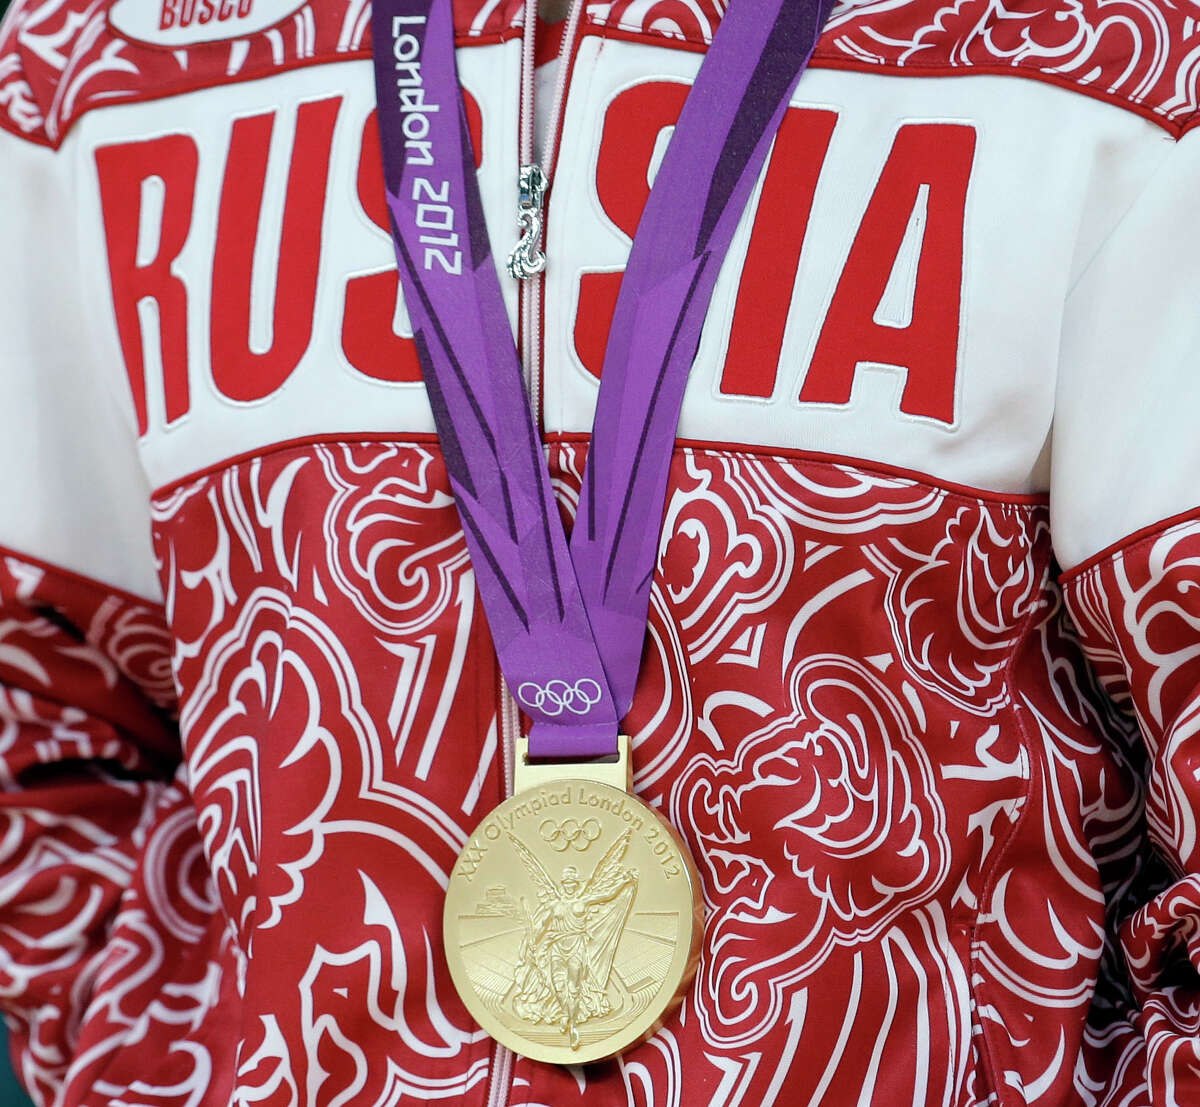 """A new report handed over to the International Olympic Committee finds that Russia employed a vast """"institutional conspiracy"""" to corrupt the drug-testing system at the 2012 and 2014 Olympic Games in London and Sochi."""